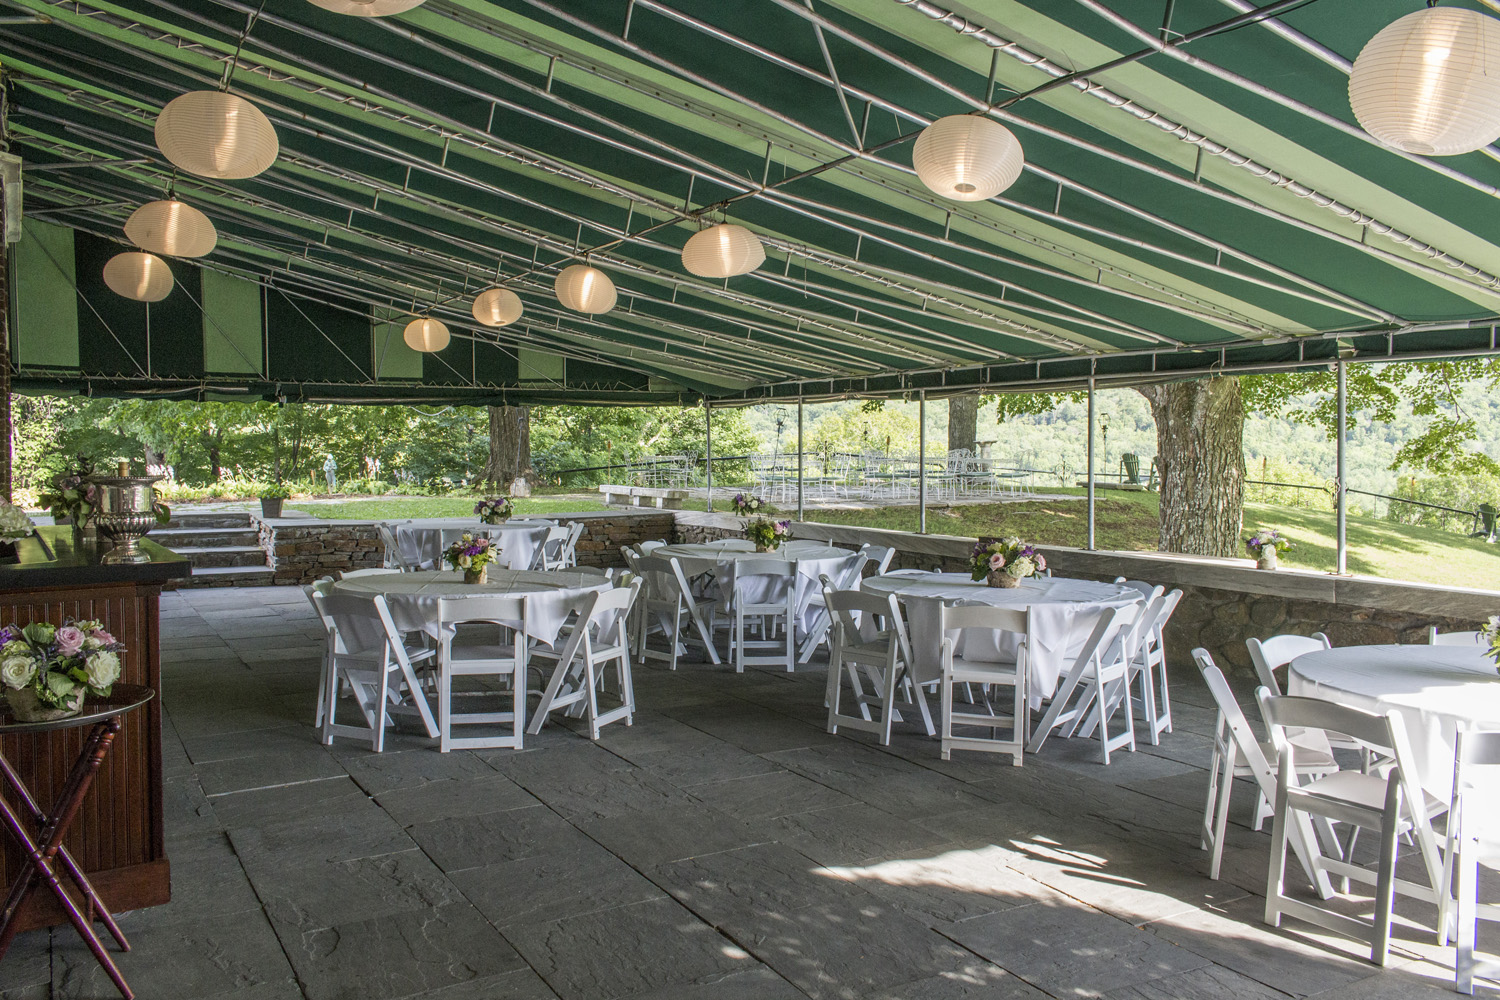 Awning_Terrace_ Rounds.jpg